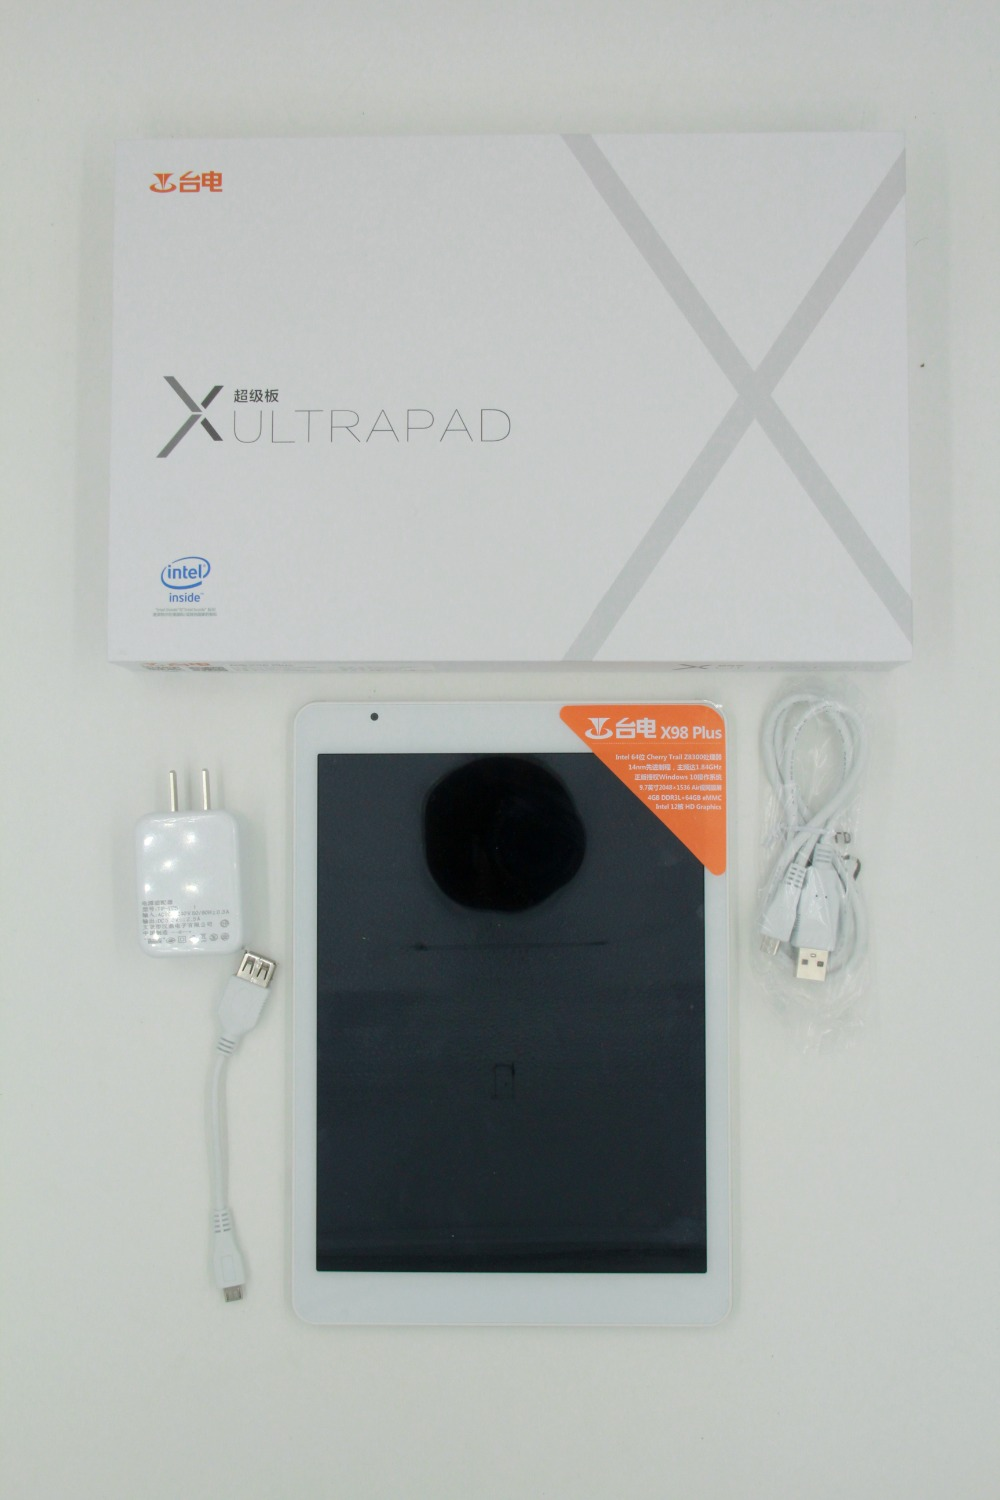 IN stock Teclast X98 plus Intel T3 Z8300 Tablet PC IPS Retina 2048x1536 4GB RAM 64GB